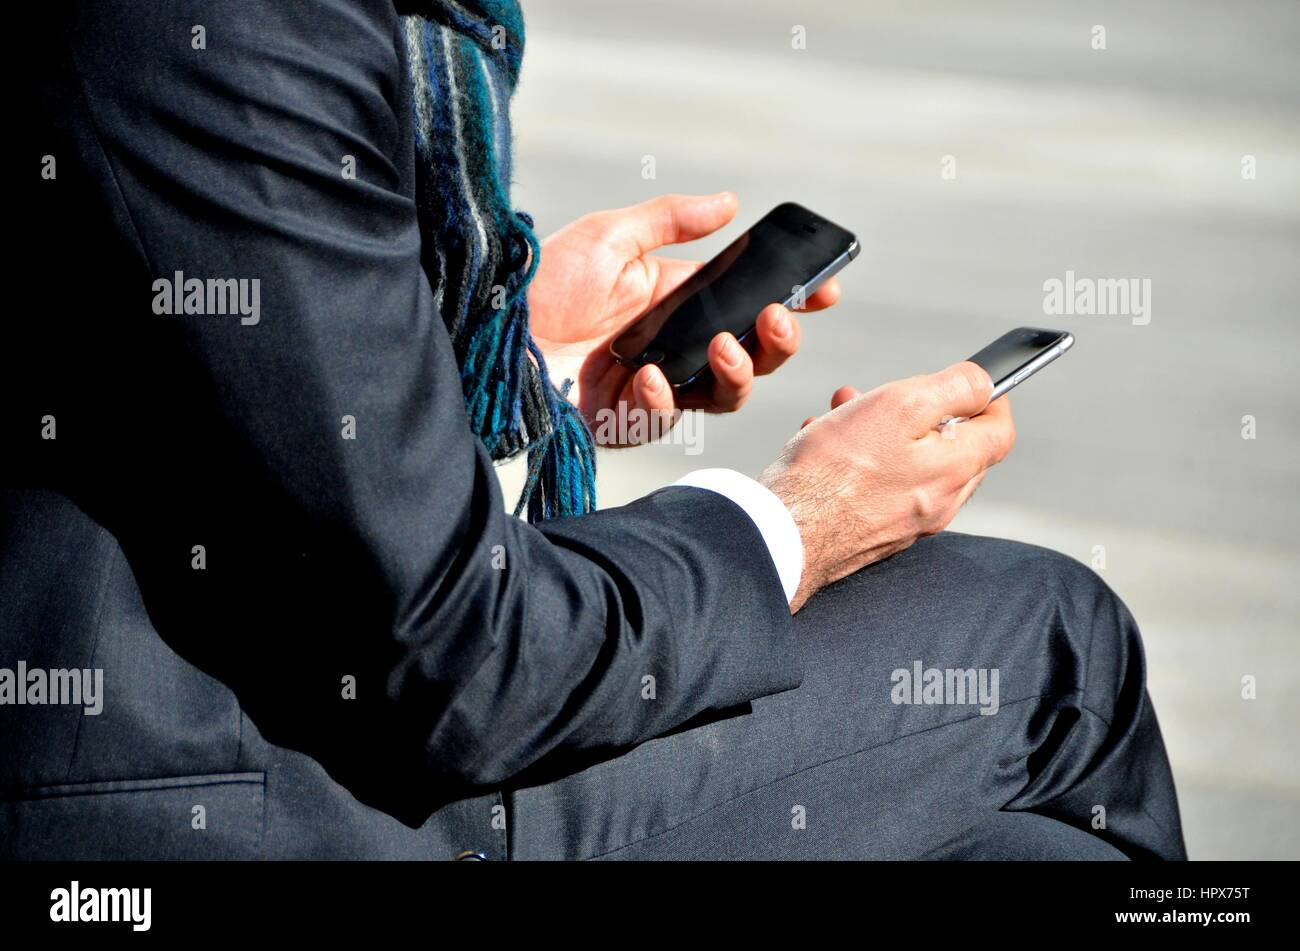 Using Two Cell Phones at same time. - Stock Image